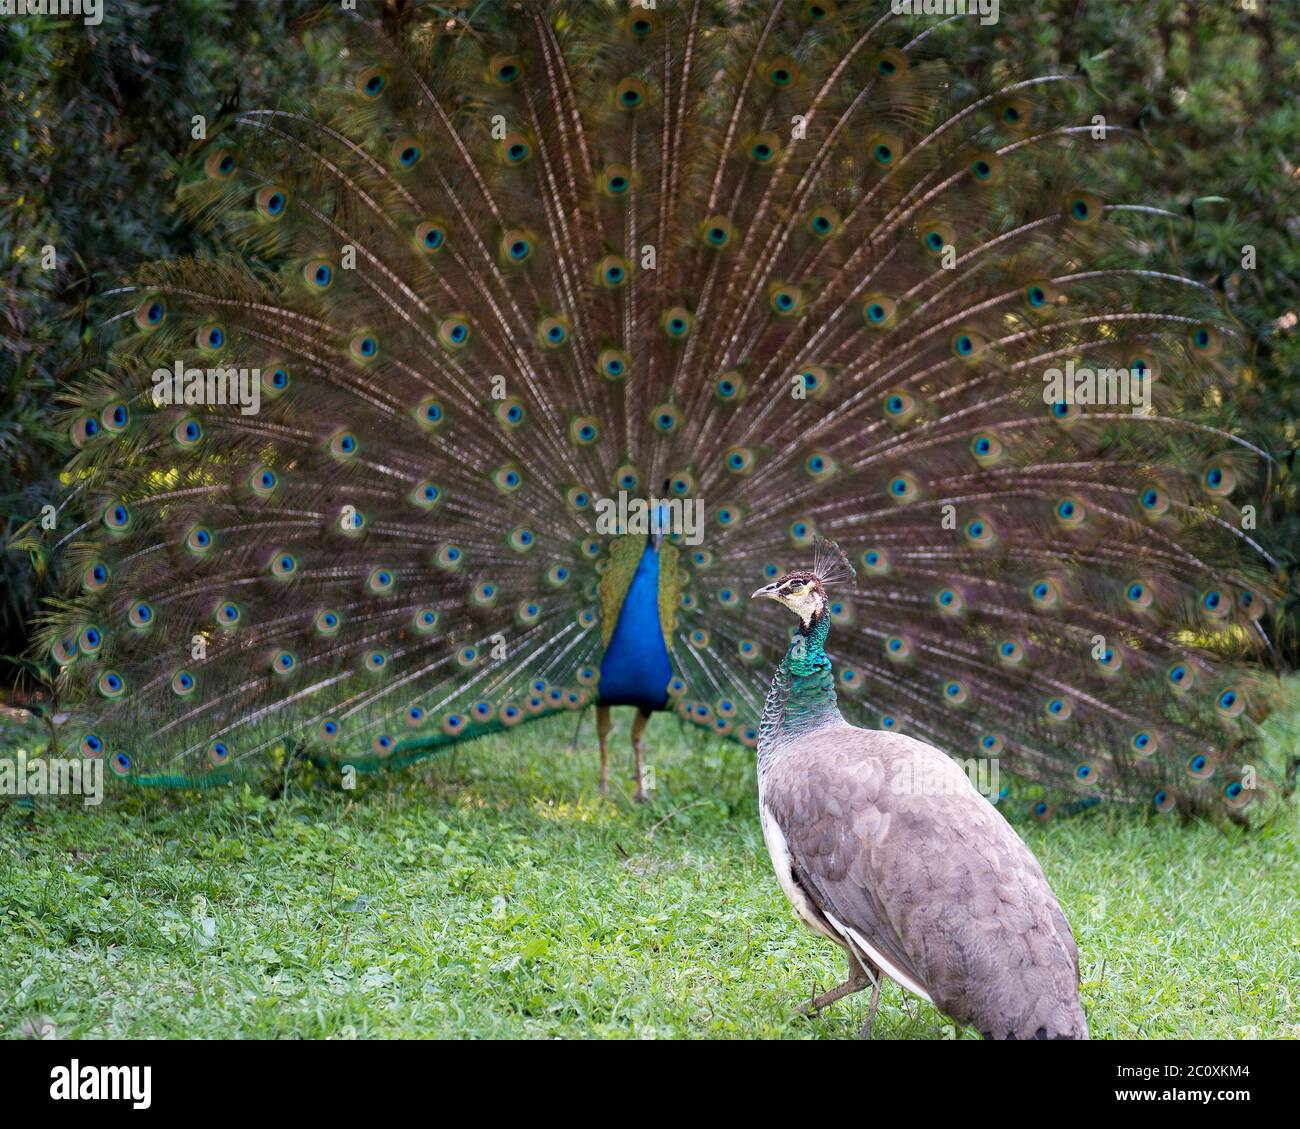 Peacock bird, the beautiful colorful bird in courtship with a female peacock present. Peacock bird displaying fold open elaborate fan with train shimm Stock Photo